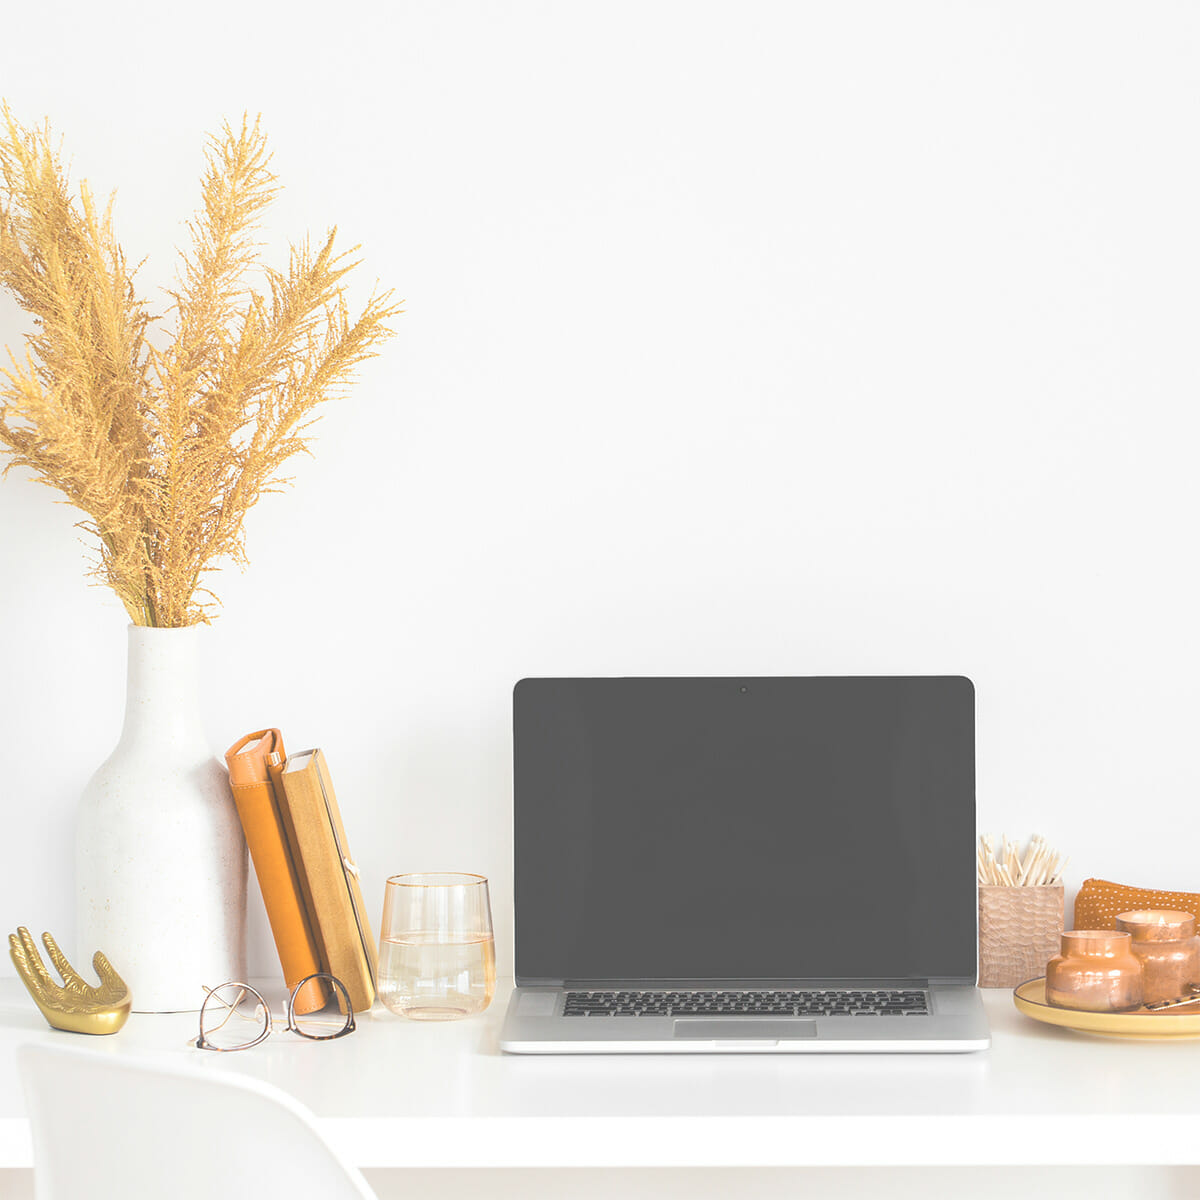 A computer on a desk - starting a small business